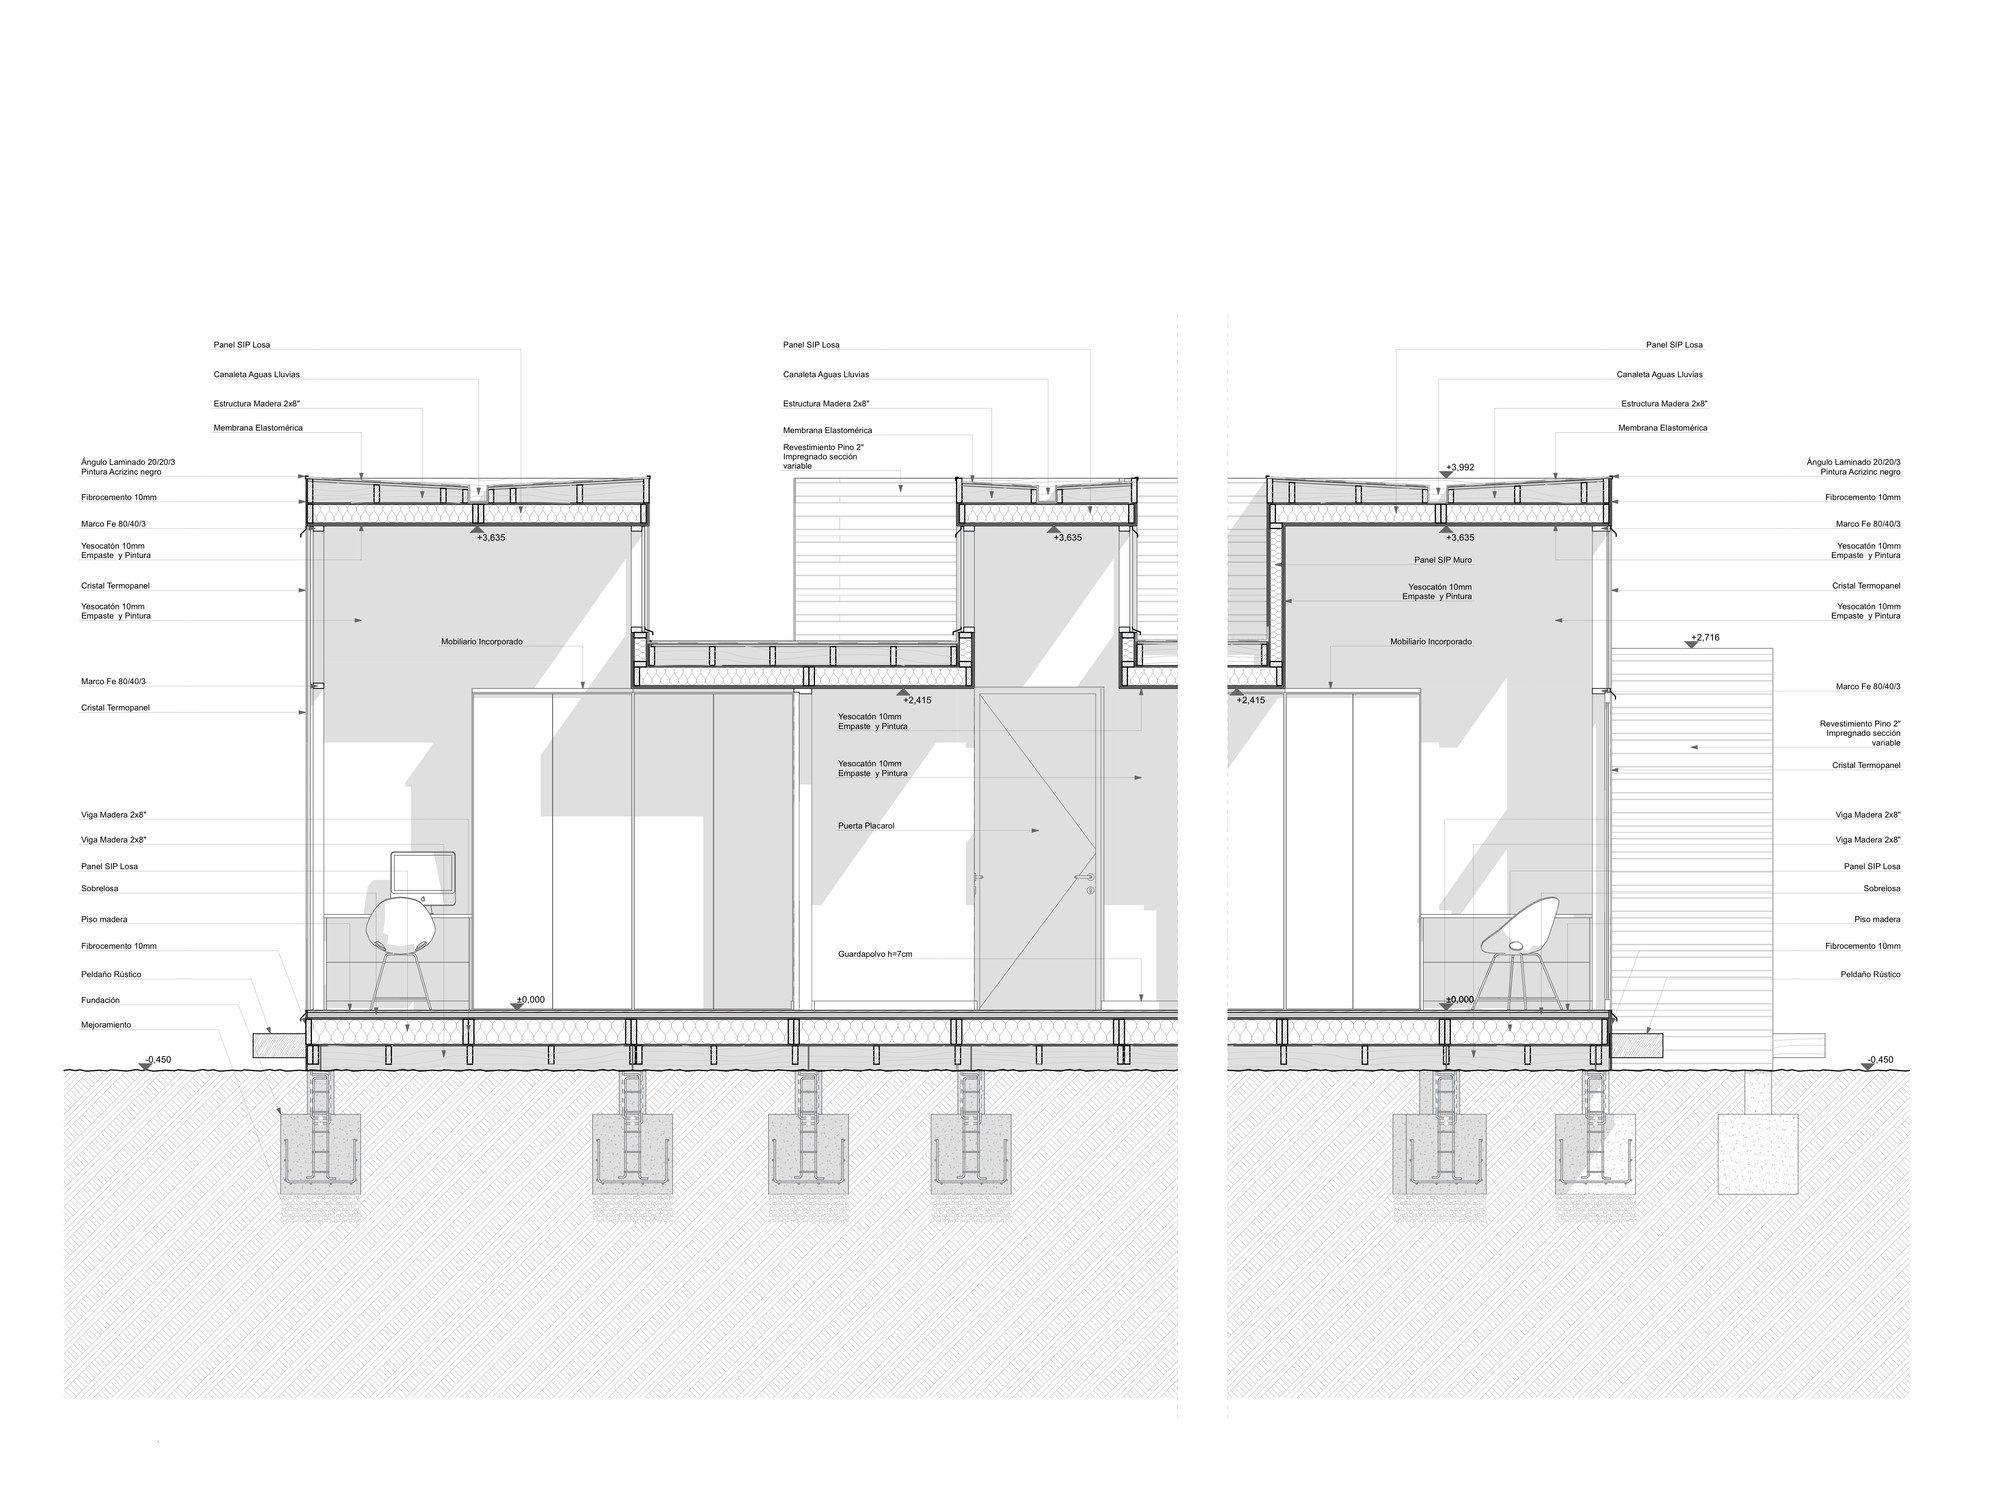 Gallery of sip m3 house ian hs gabriel rudolphy 32 for Sip construction plans